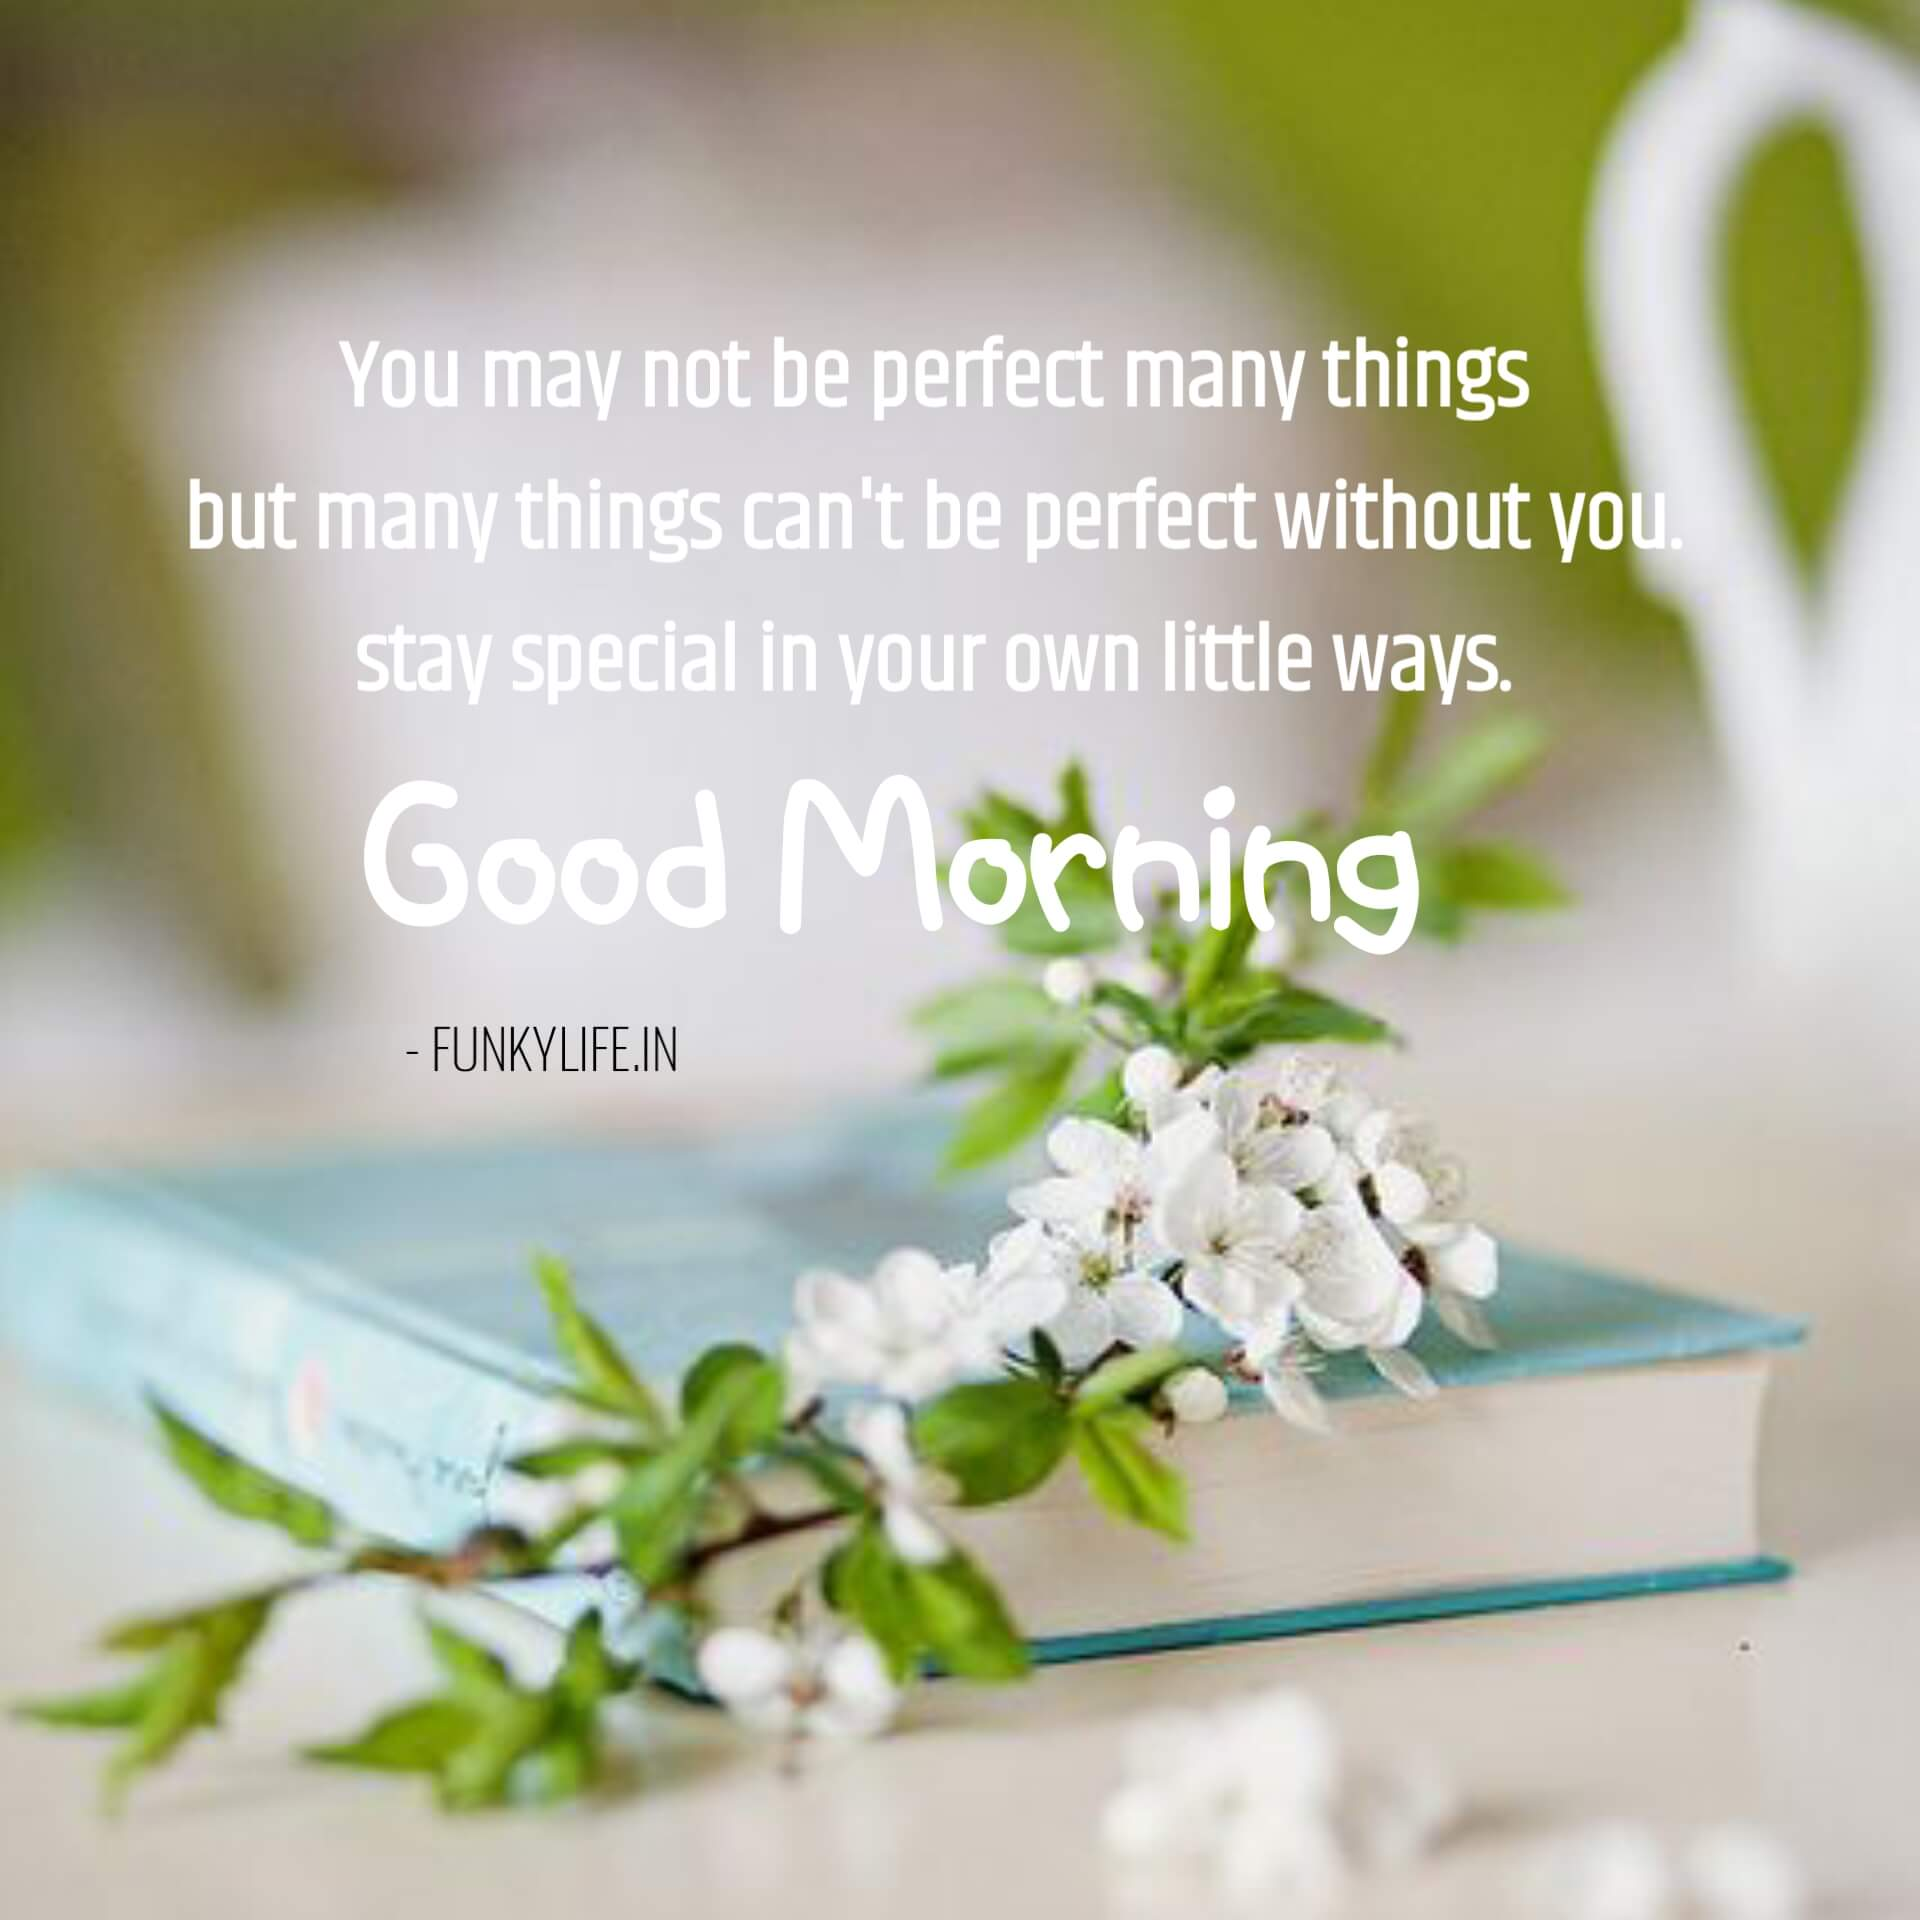 Good Morning Thought With Image